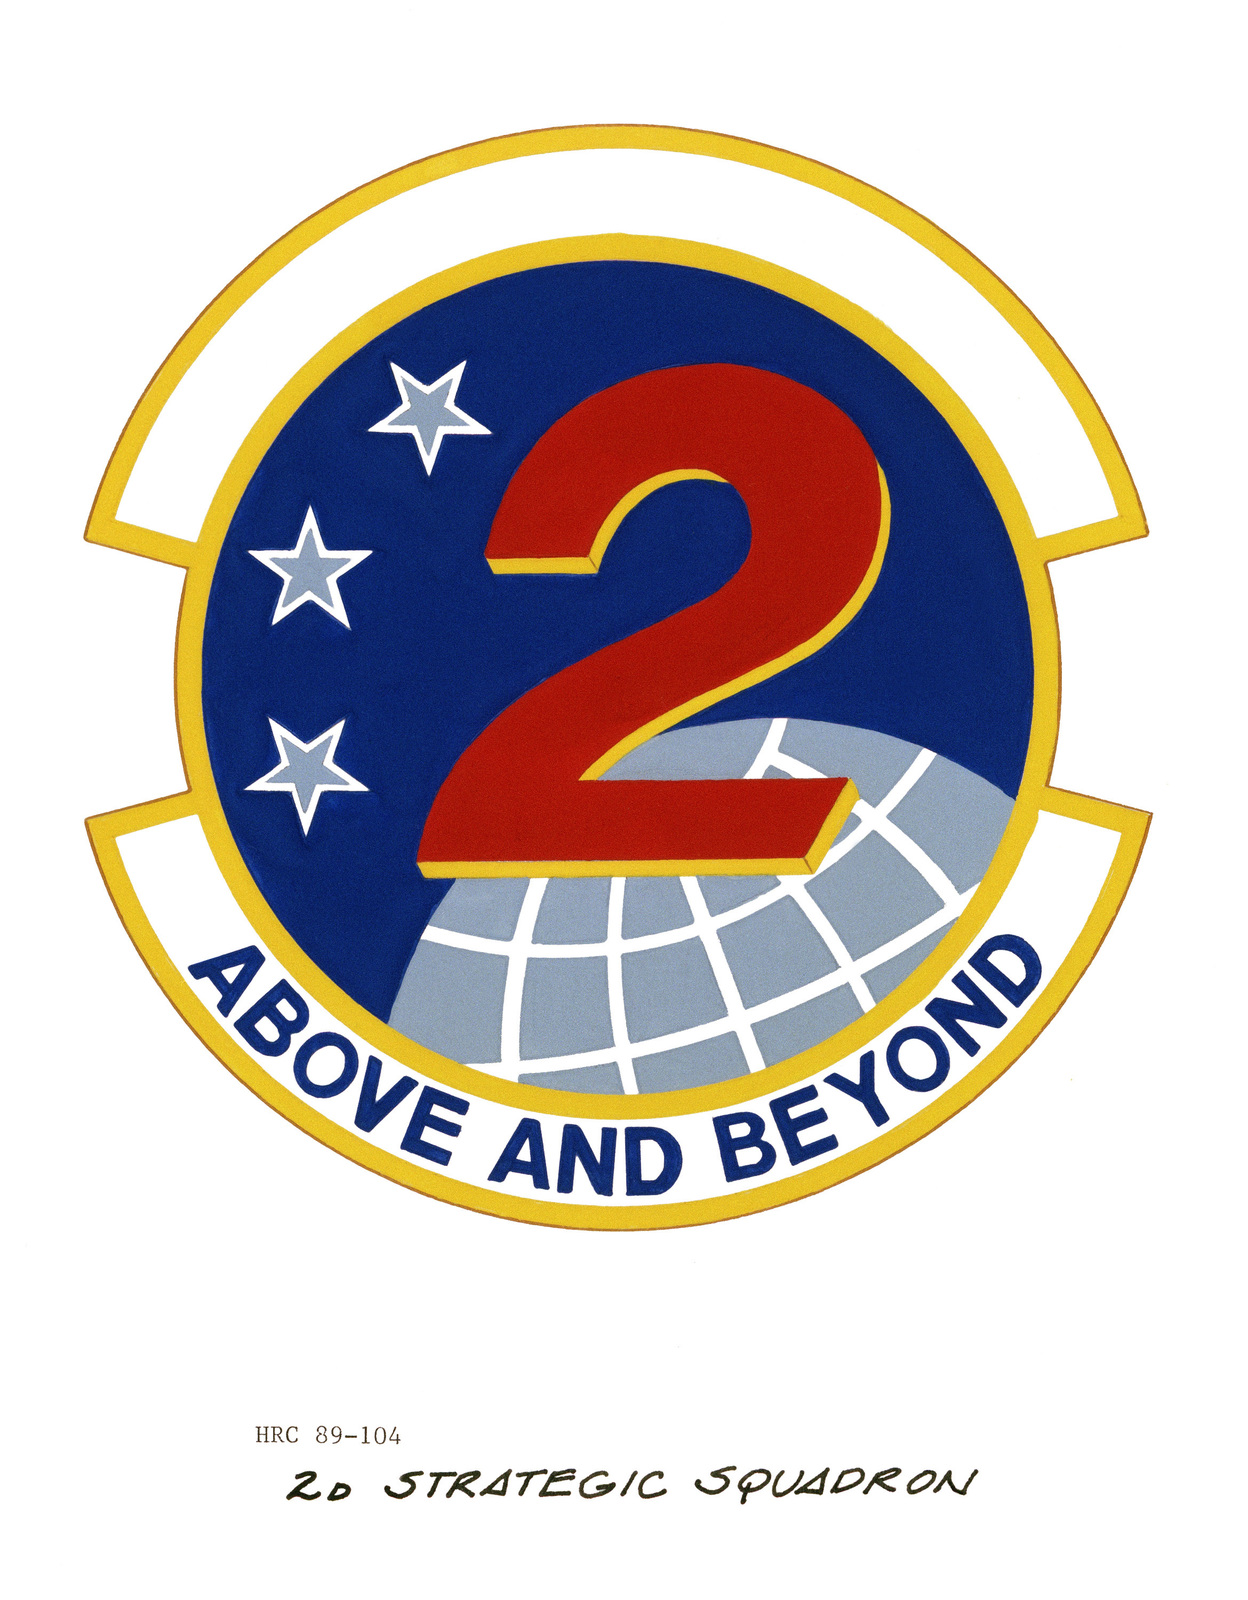 Approved insignia for: 2nd Strategic Squadron